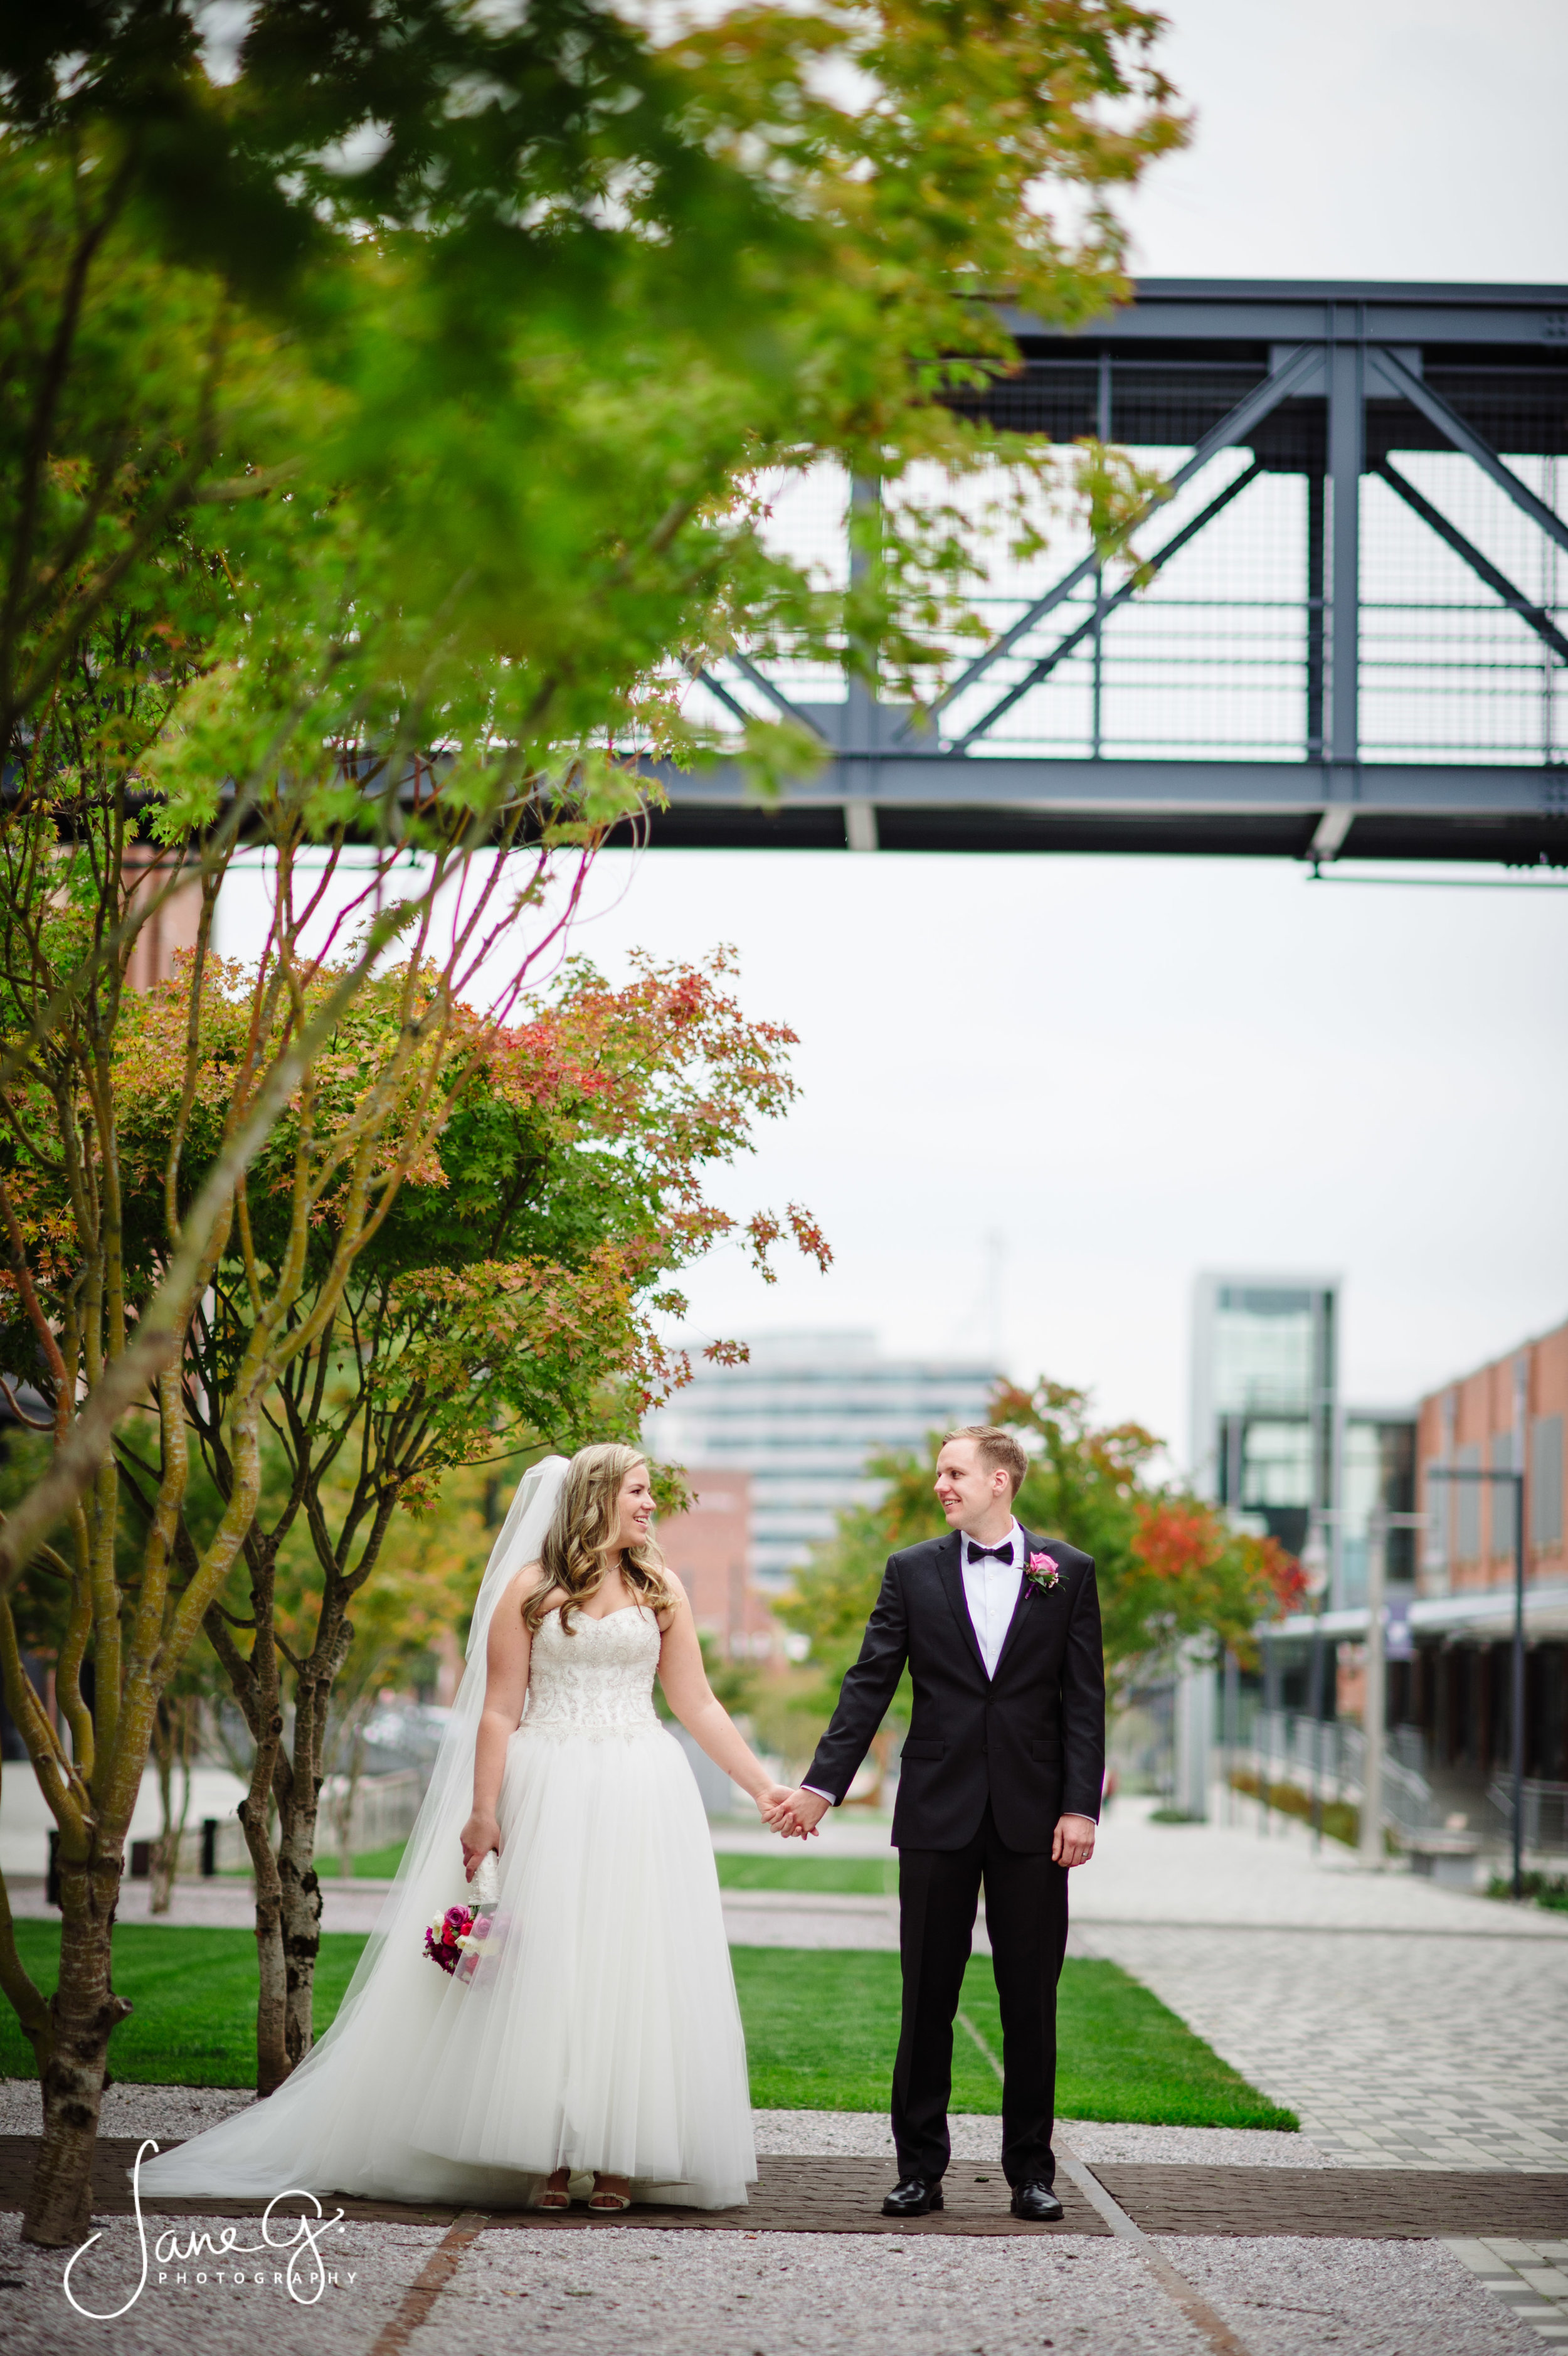 AllisonandJeremyWed_JaneGPhoto-646.jpg